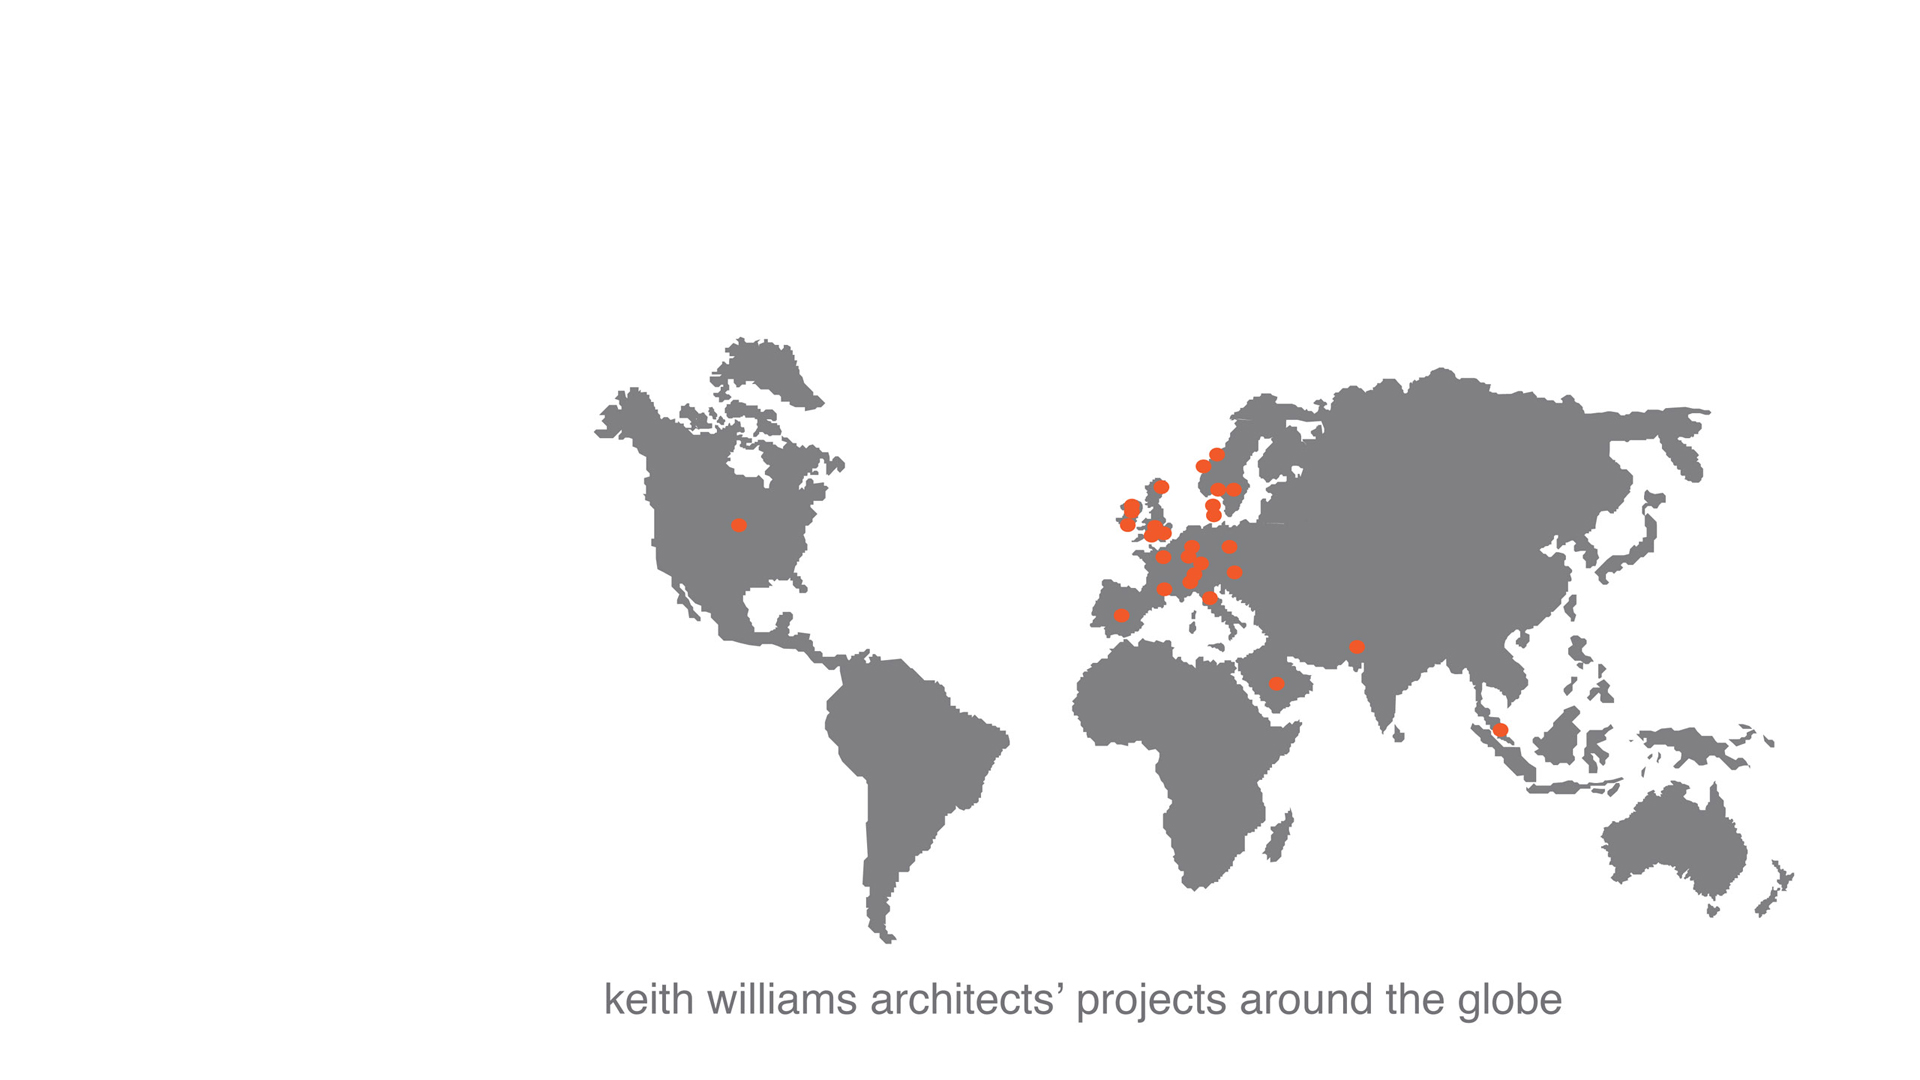 Keith Williams Architects' projects around the globe